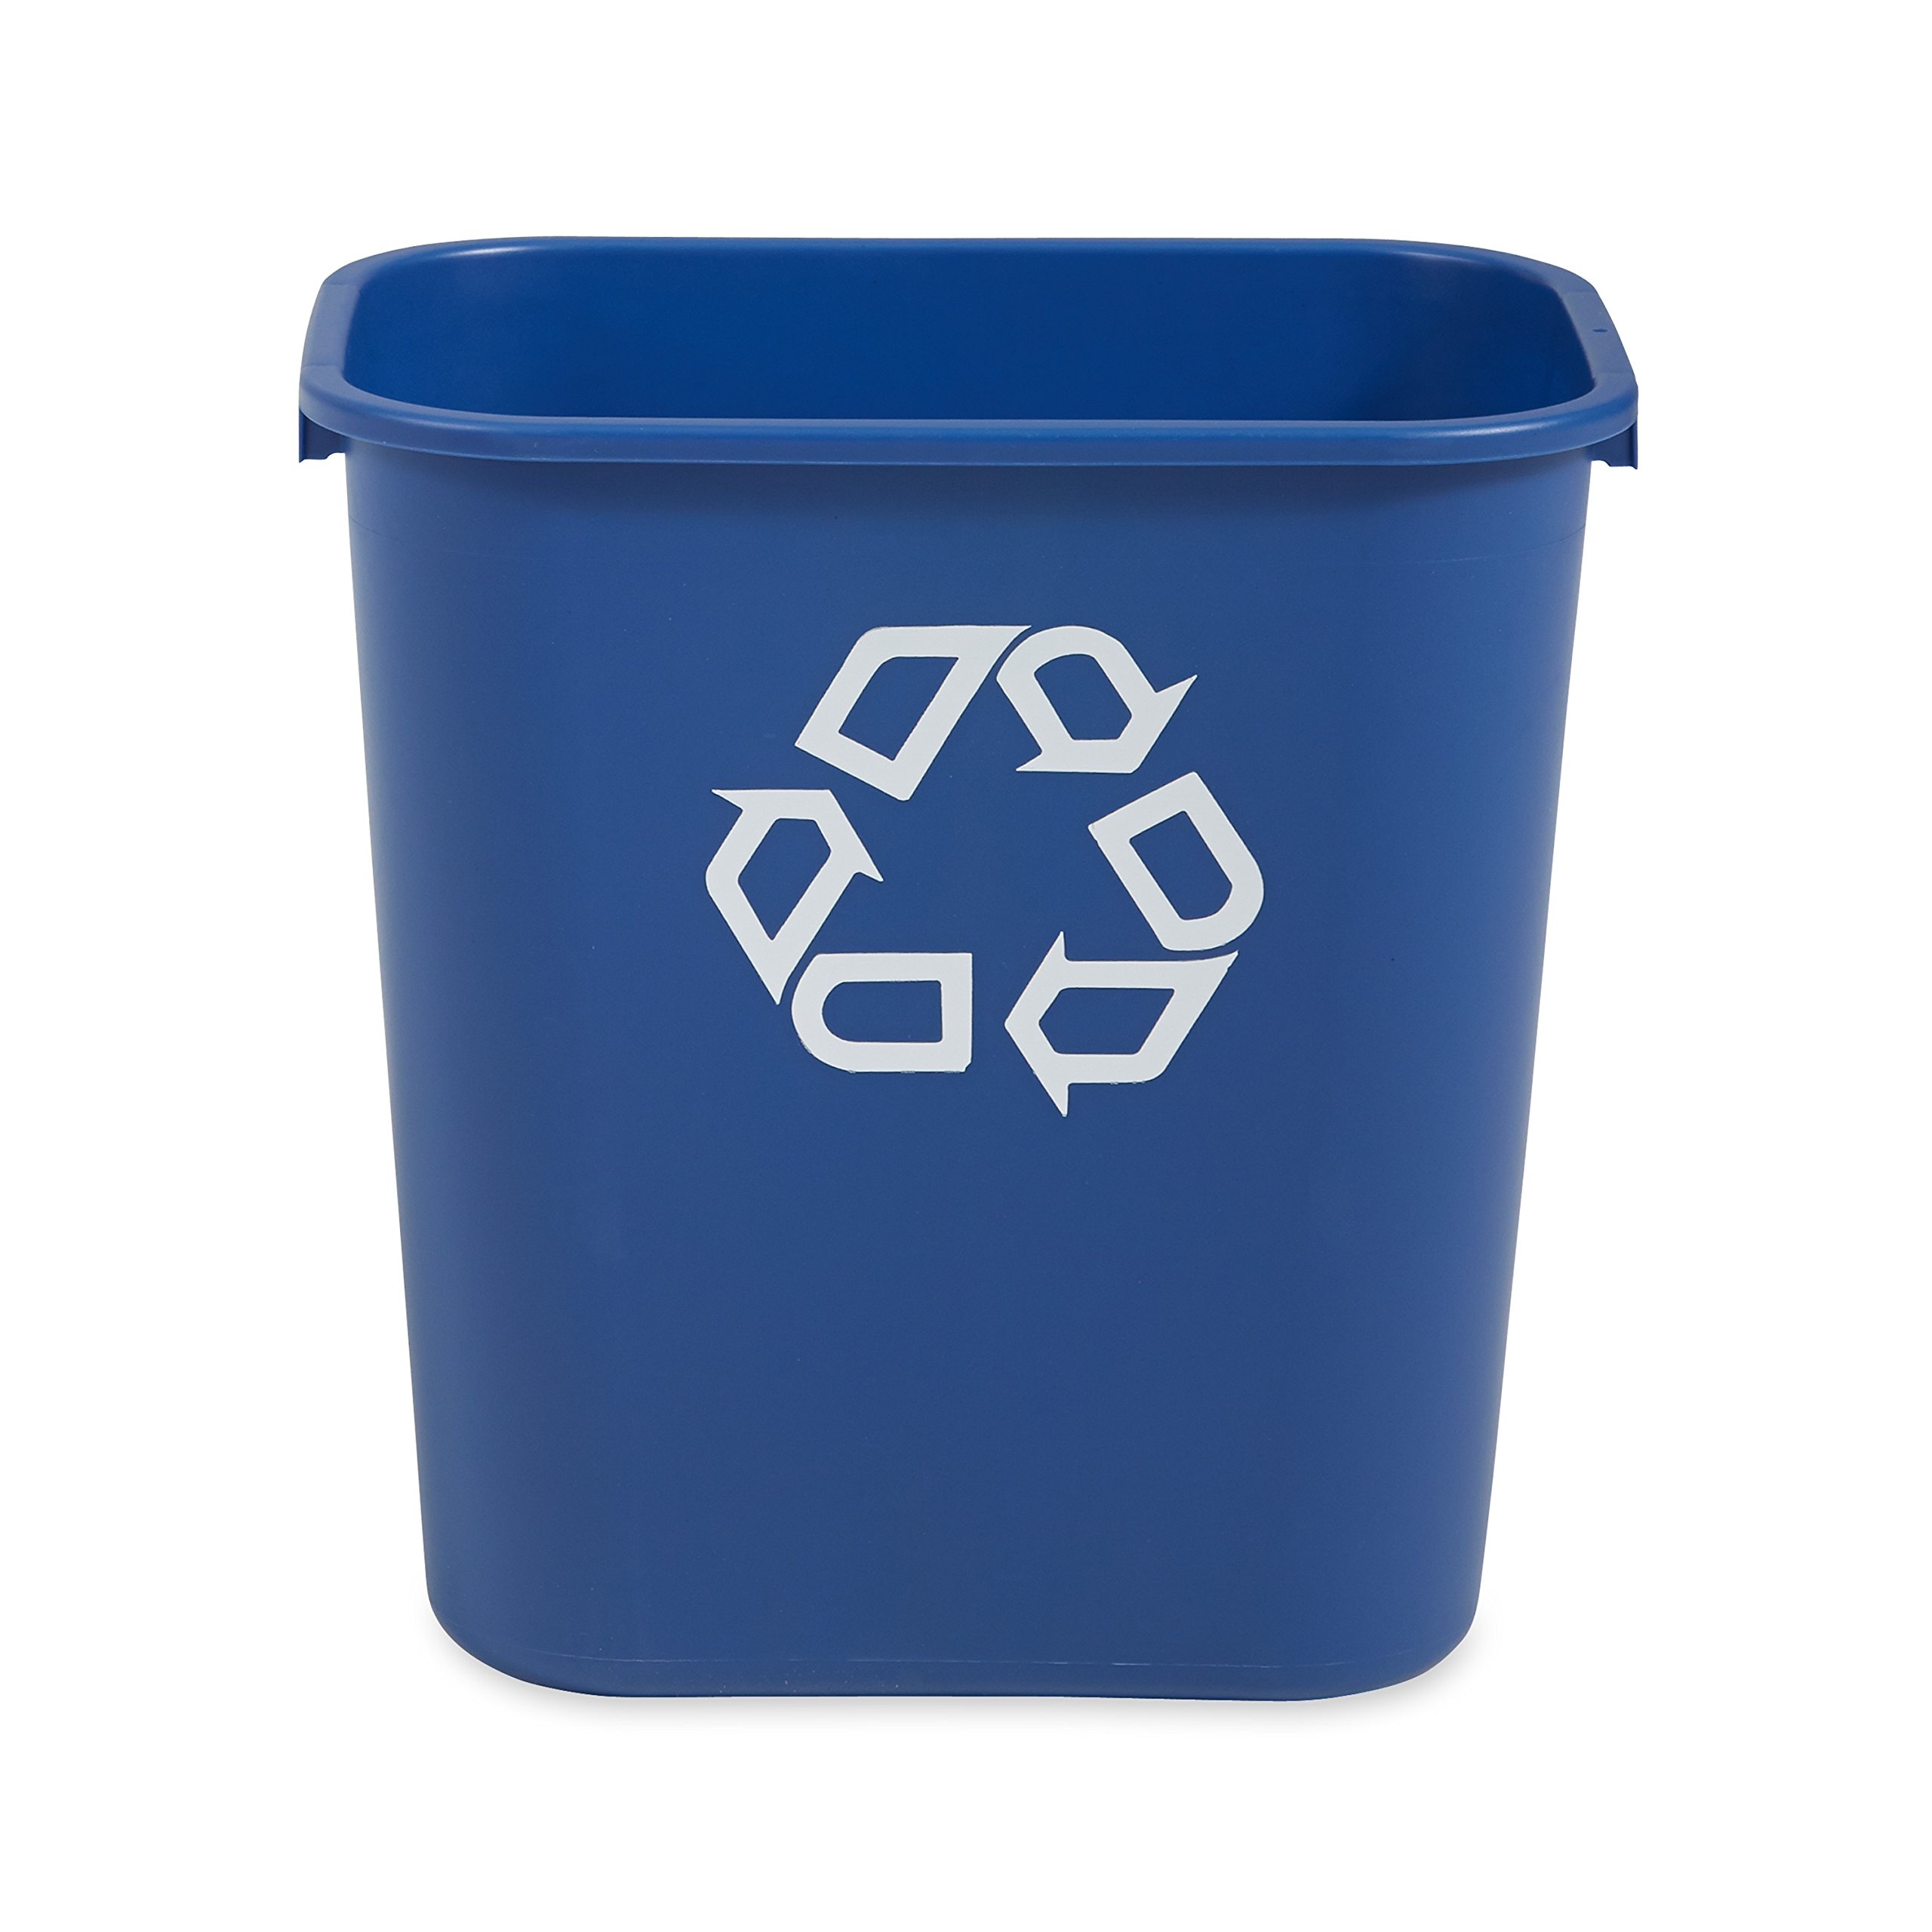 Rubbermaid Commercial Deskside Recycling Container, Medium, 7 Gallon, Blue (Pack of 12) (FG295673BLUE)